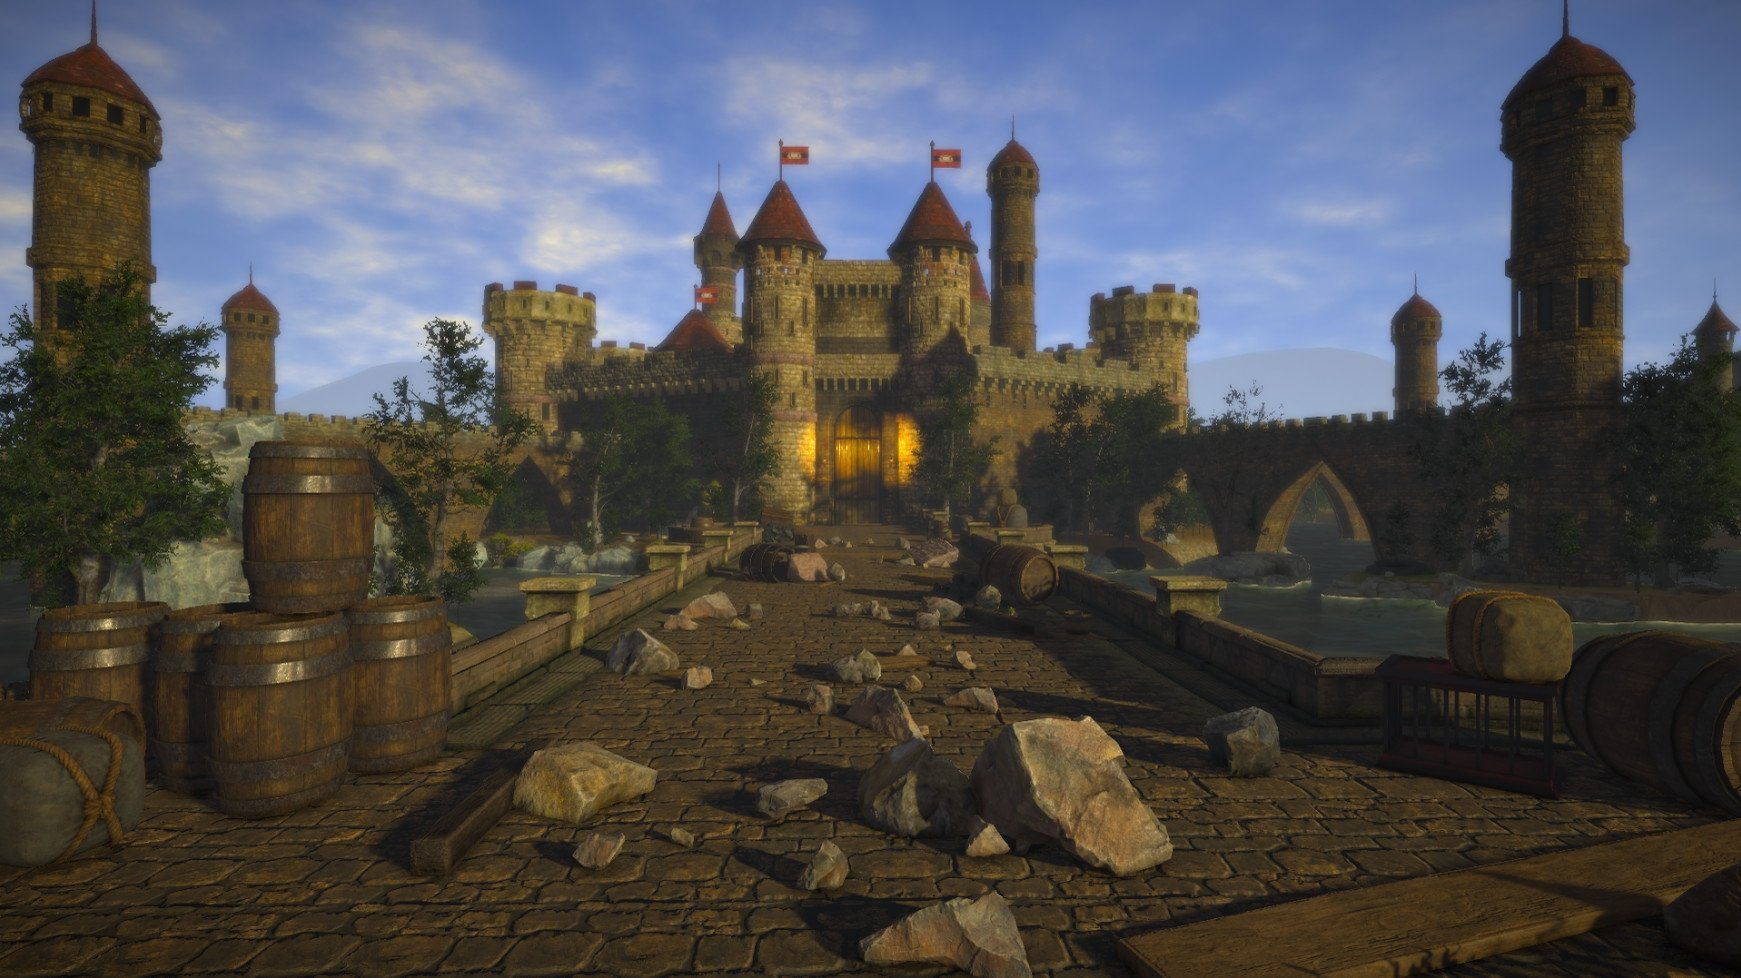 Become A Medieval Royal Craftsman In The Upcoming Simulation Game Castle Flipper